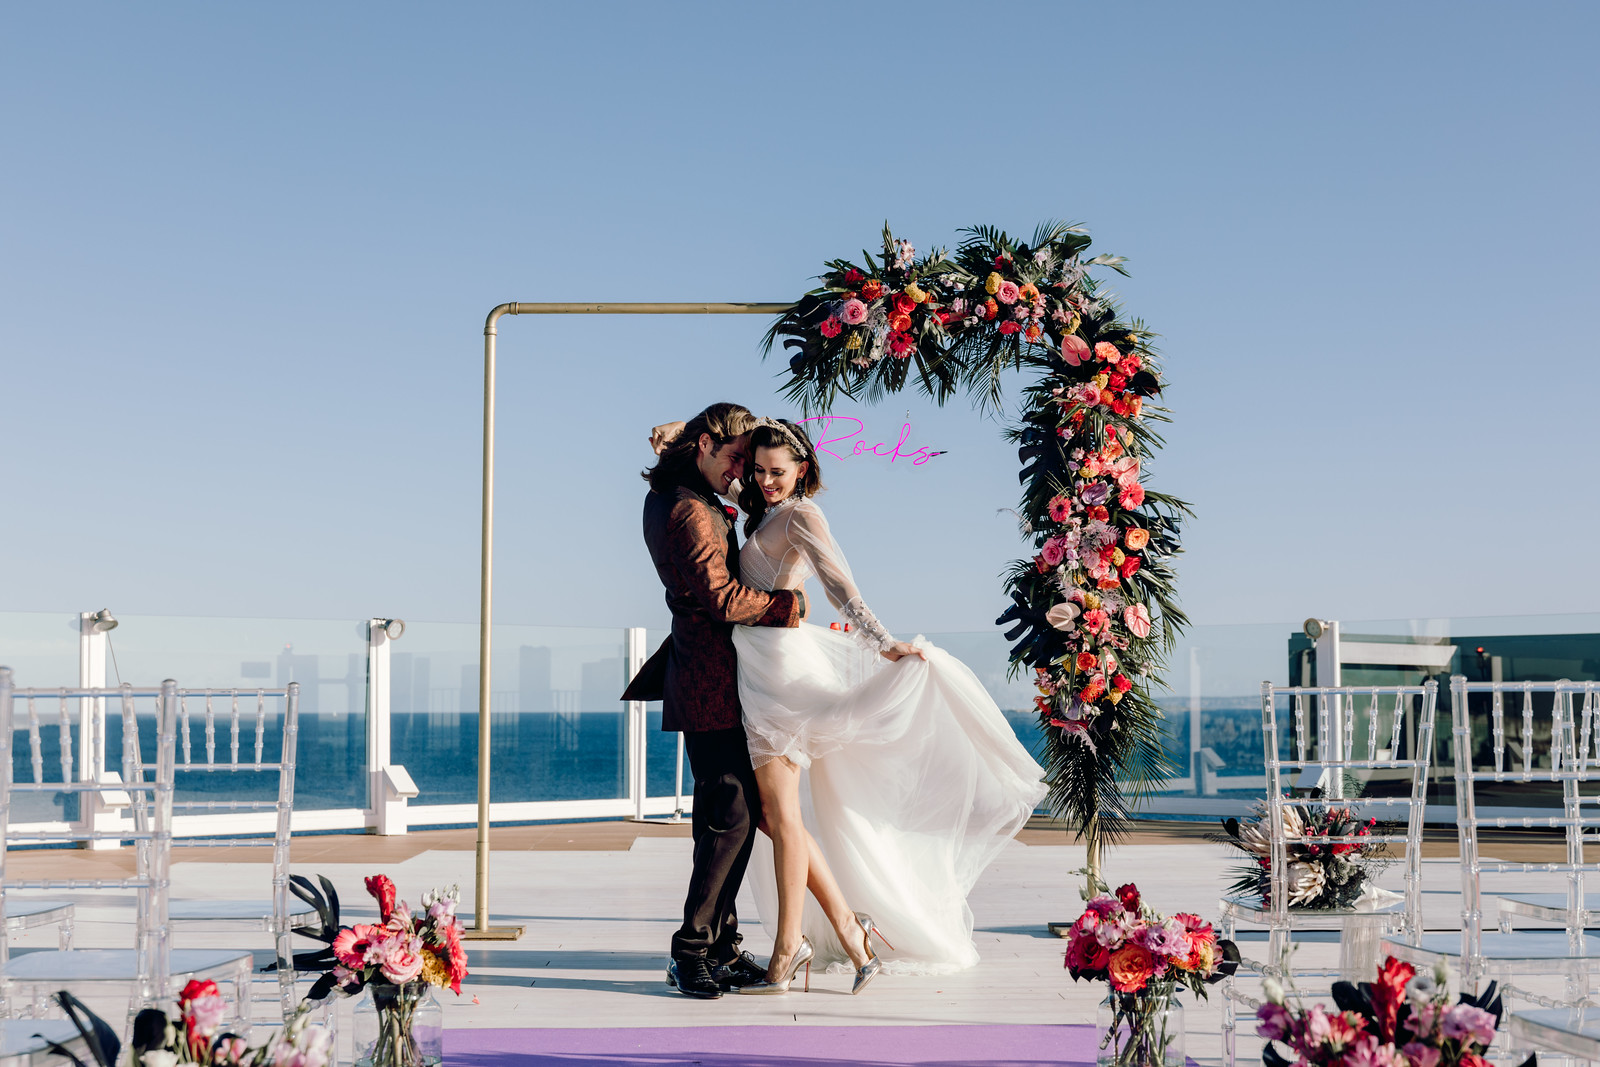 https://www.white-ibiza.com/wp-content/uploads/2020/03/white-ibiza-wedding-venues-weddings-by-palladium-2020-01.jpg